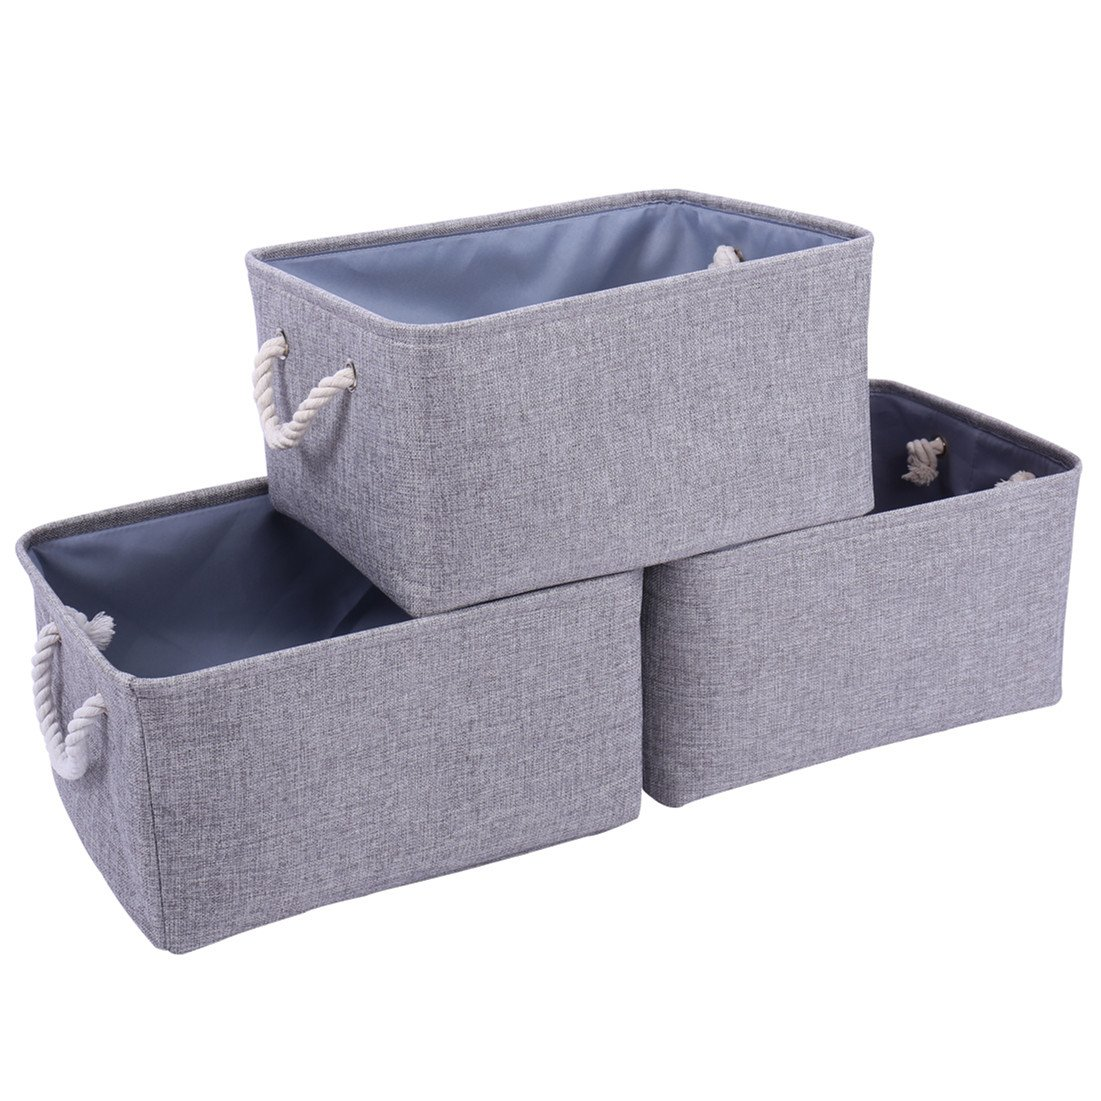 TheWarmHome Storage Bins Baskets for Shelves|Fabric Storage Bins for Cloth Storage [3-Pack] Bathroom Storage Baskets for Closet Storage,Toy Basket for Gifts HS3GE